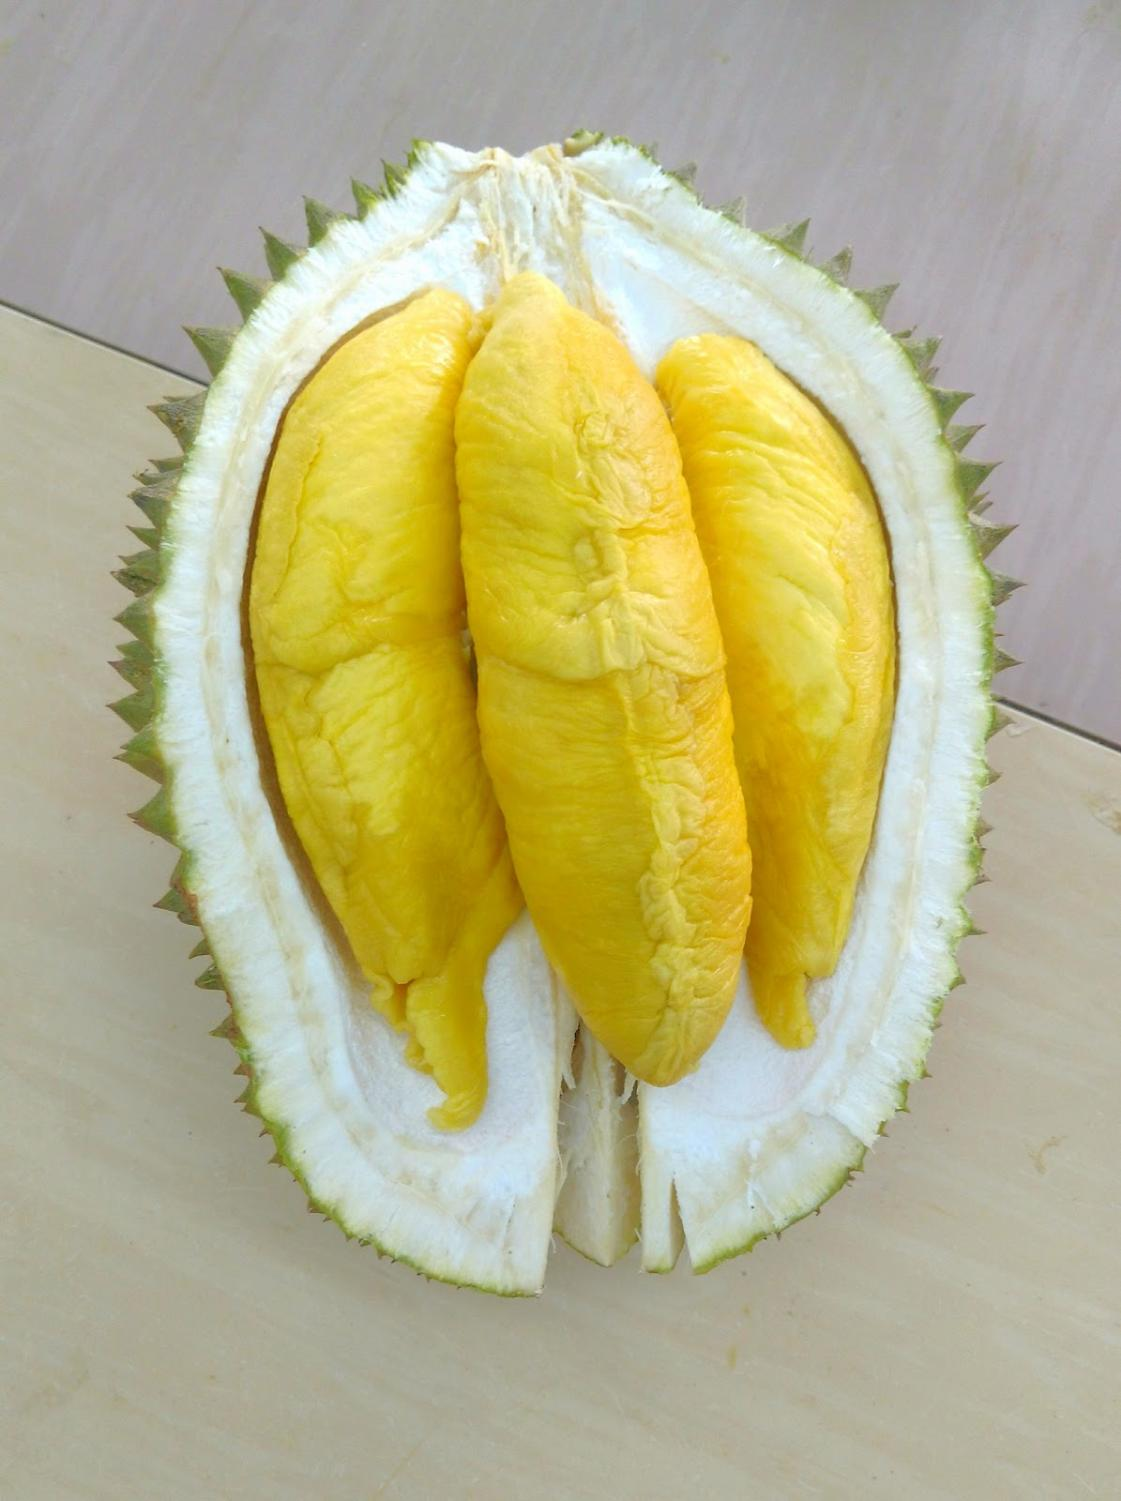 Durian, the king of all fruits, is a Malaysian delicacy.